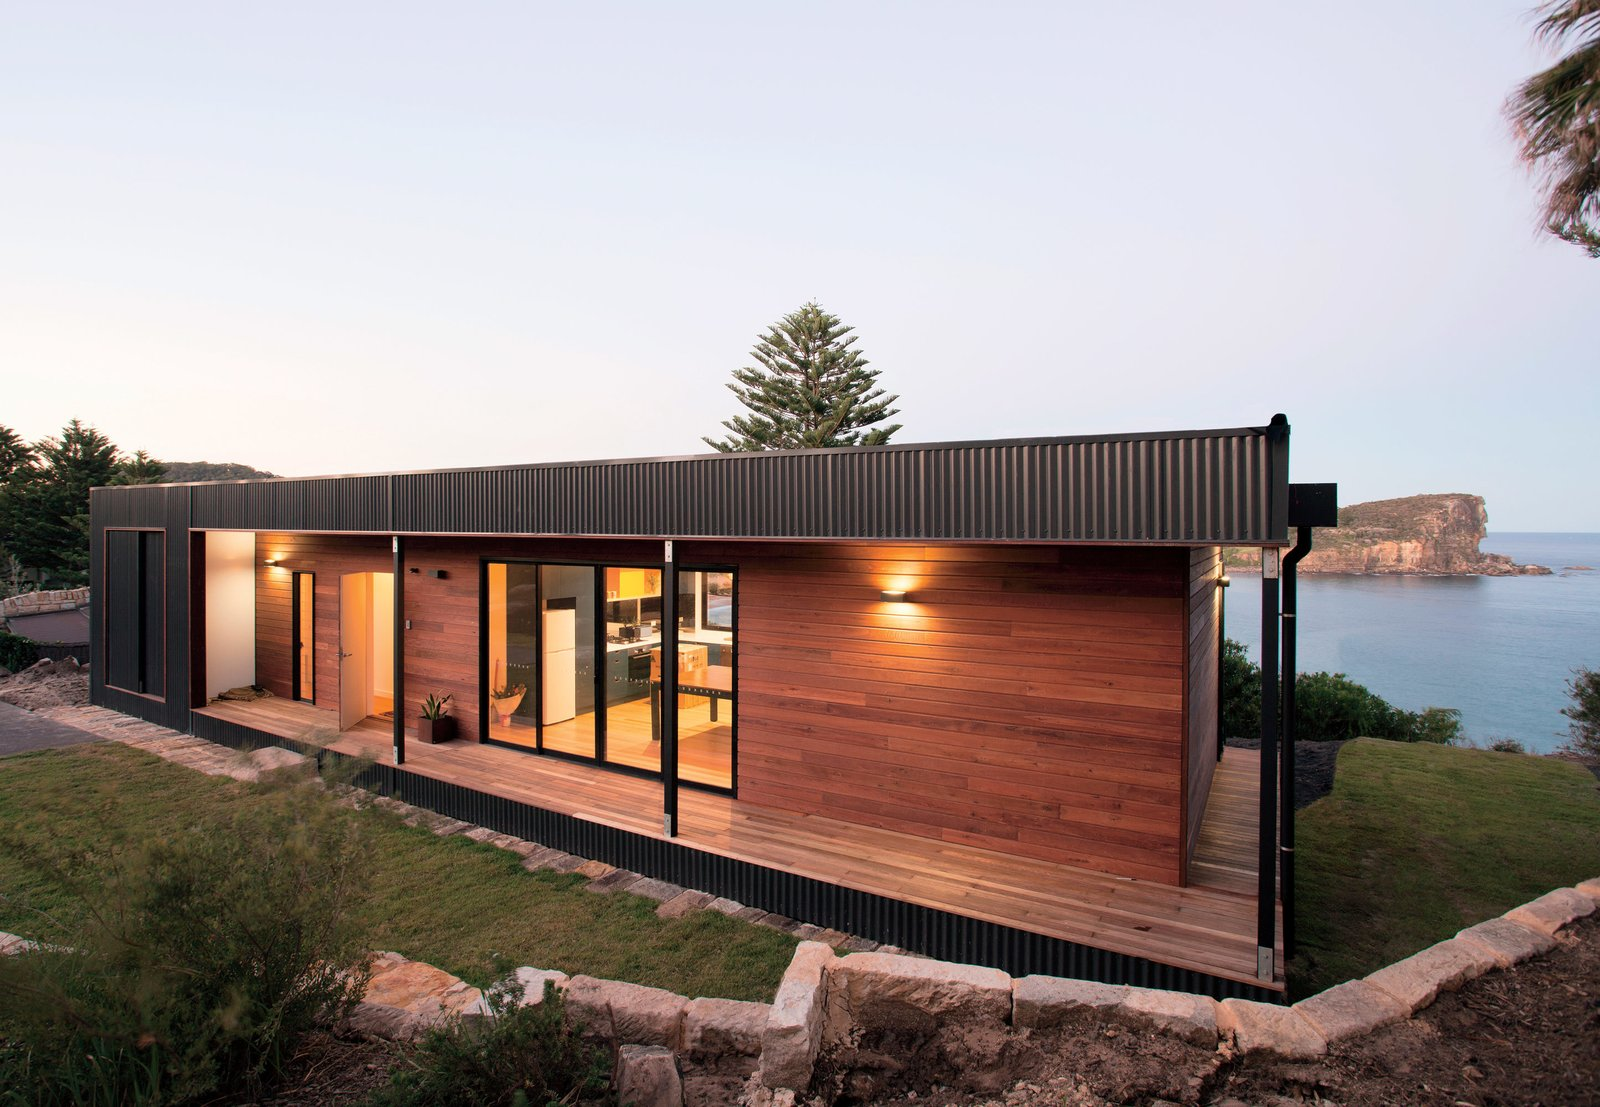 A prefab house designed by ArchiBlox on the northern beaches of Sydney sustains high winds and spray from the surf, so the firm wrapped the exterior in marine-grade Colorbond Ultra steel. Panels of Queensland blue gum, a native Australian hardwood, clad the street-side facade, which is protected from the harsh climate. Tagged: Outdoor, Back Yard, Grass, Shrubs, Wood Patio, Porch, Deck, and Small Patio, Porch, Deck.  Modern Beach Homes in Australia by Matthew Keeshin from A Dramatic Cliffside Prefab Steps from the Beach in Australia